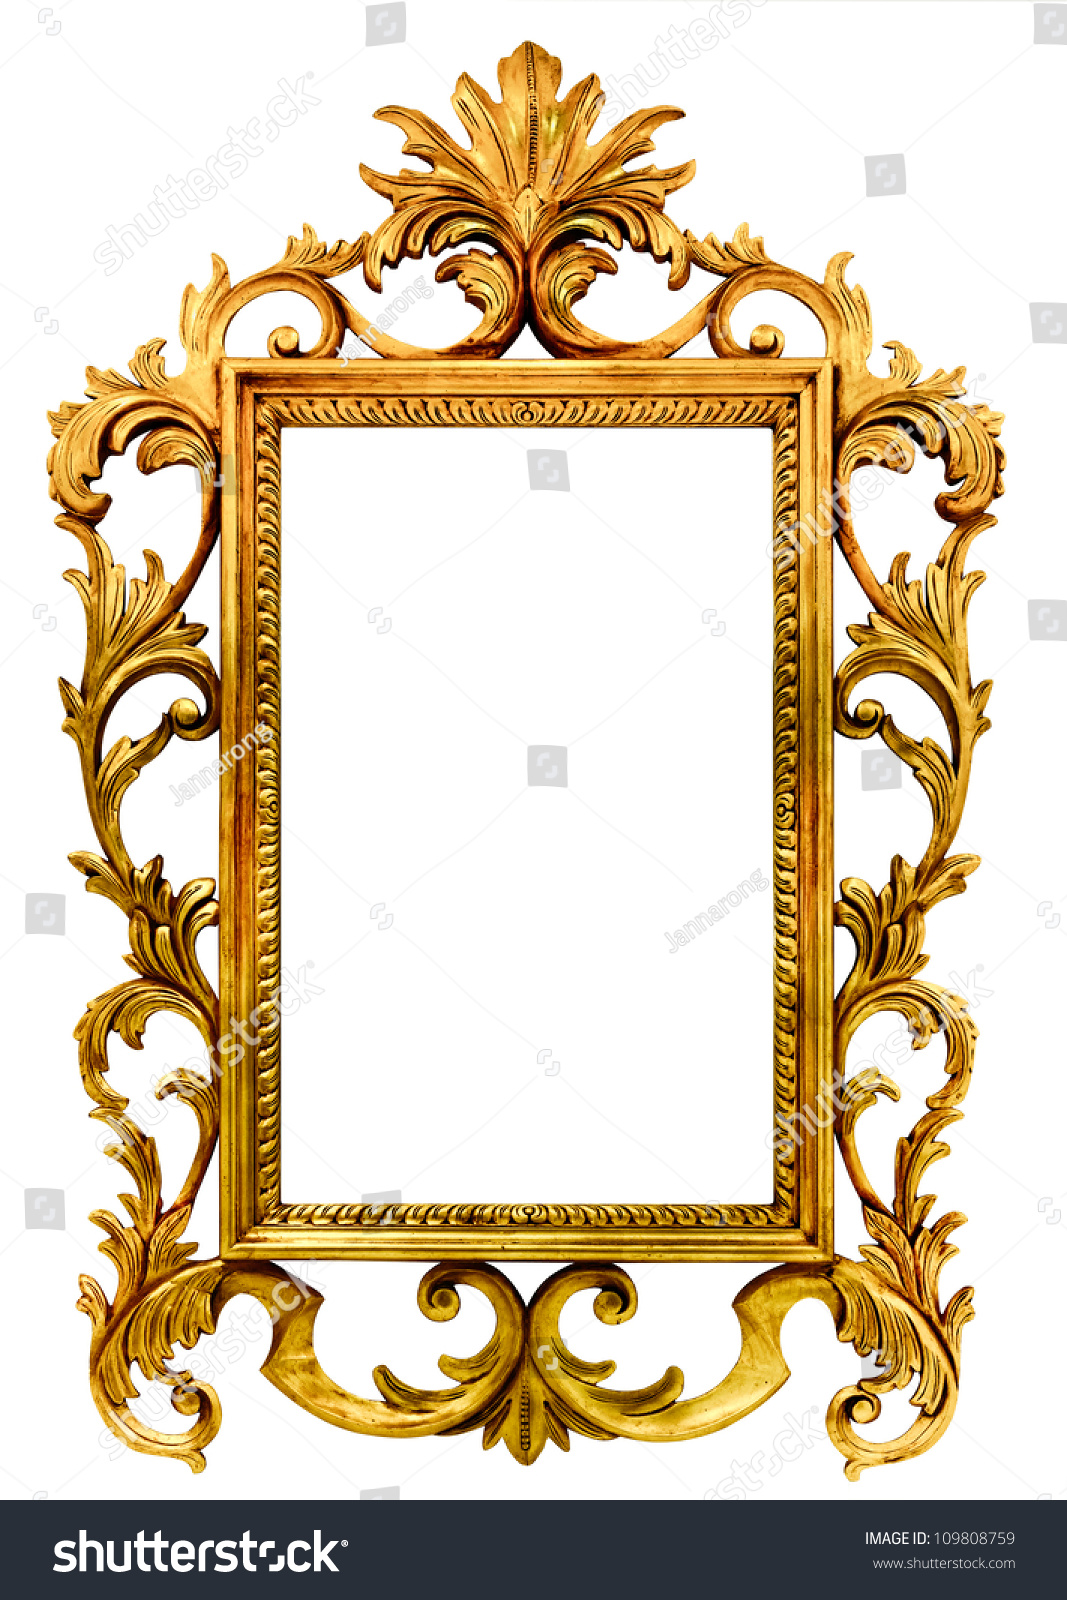 High resolution baroque style vintage wood stock photo for Baroque fashion design